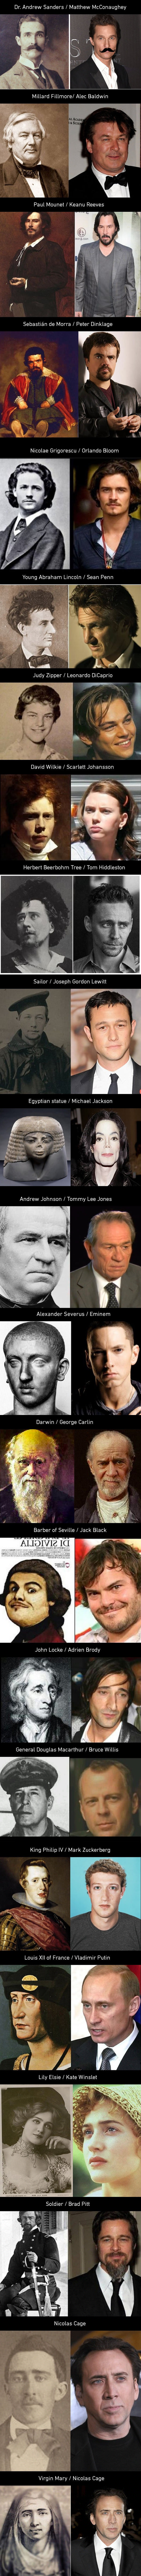 celebs-historical-twins